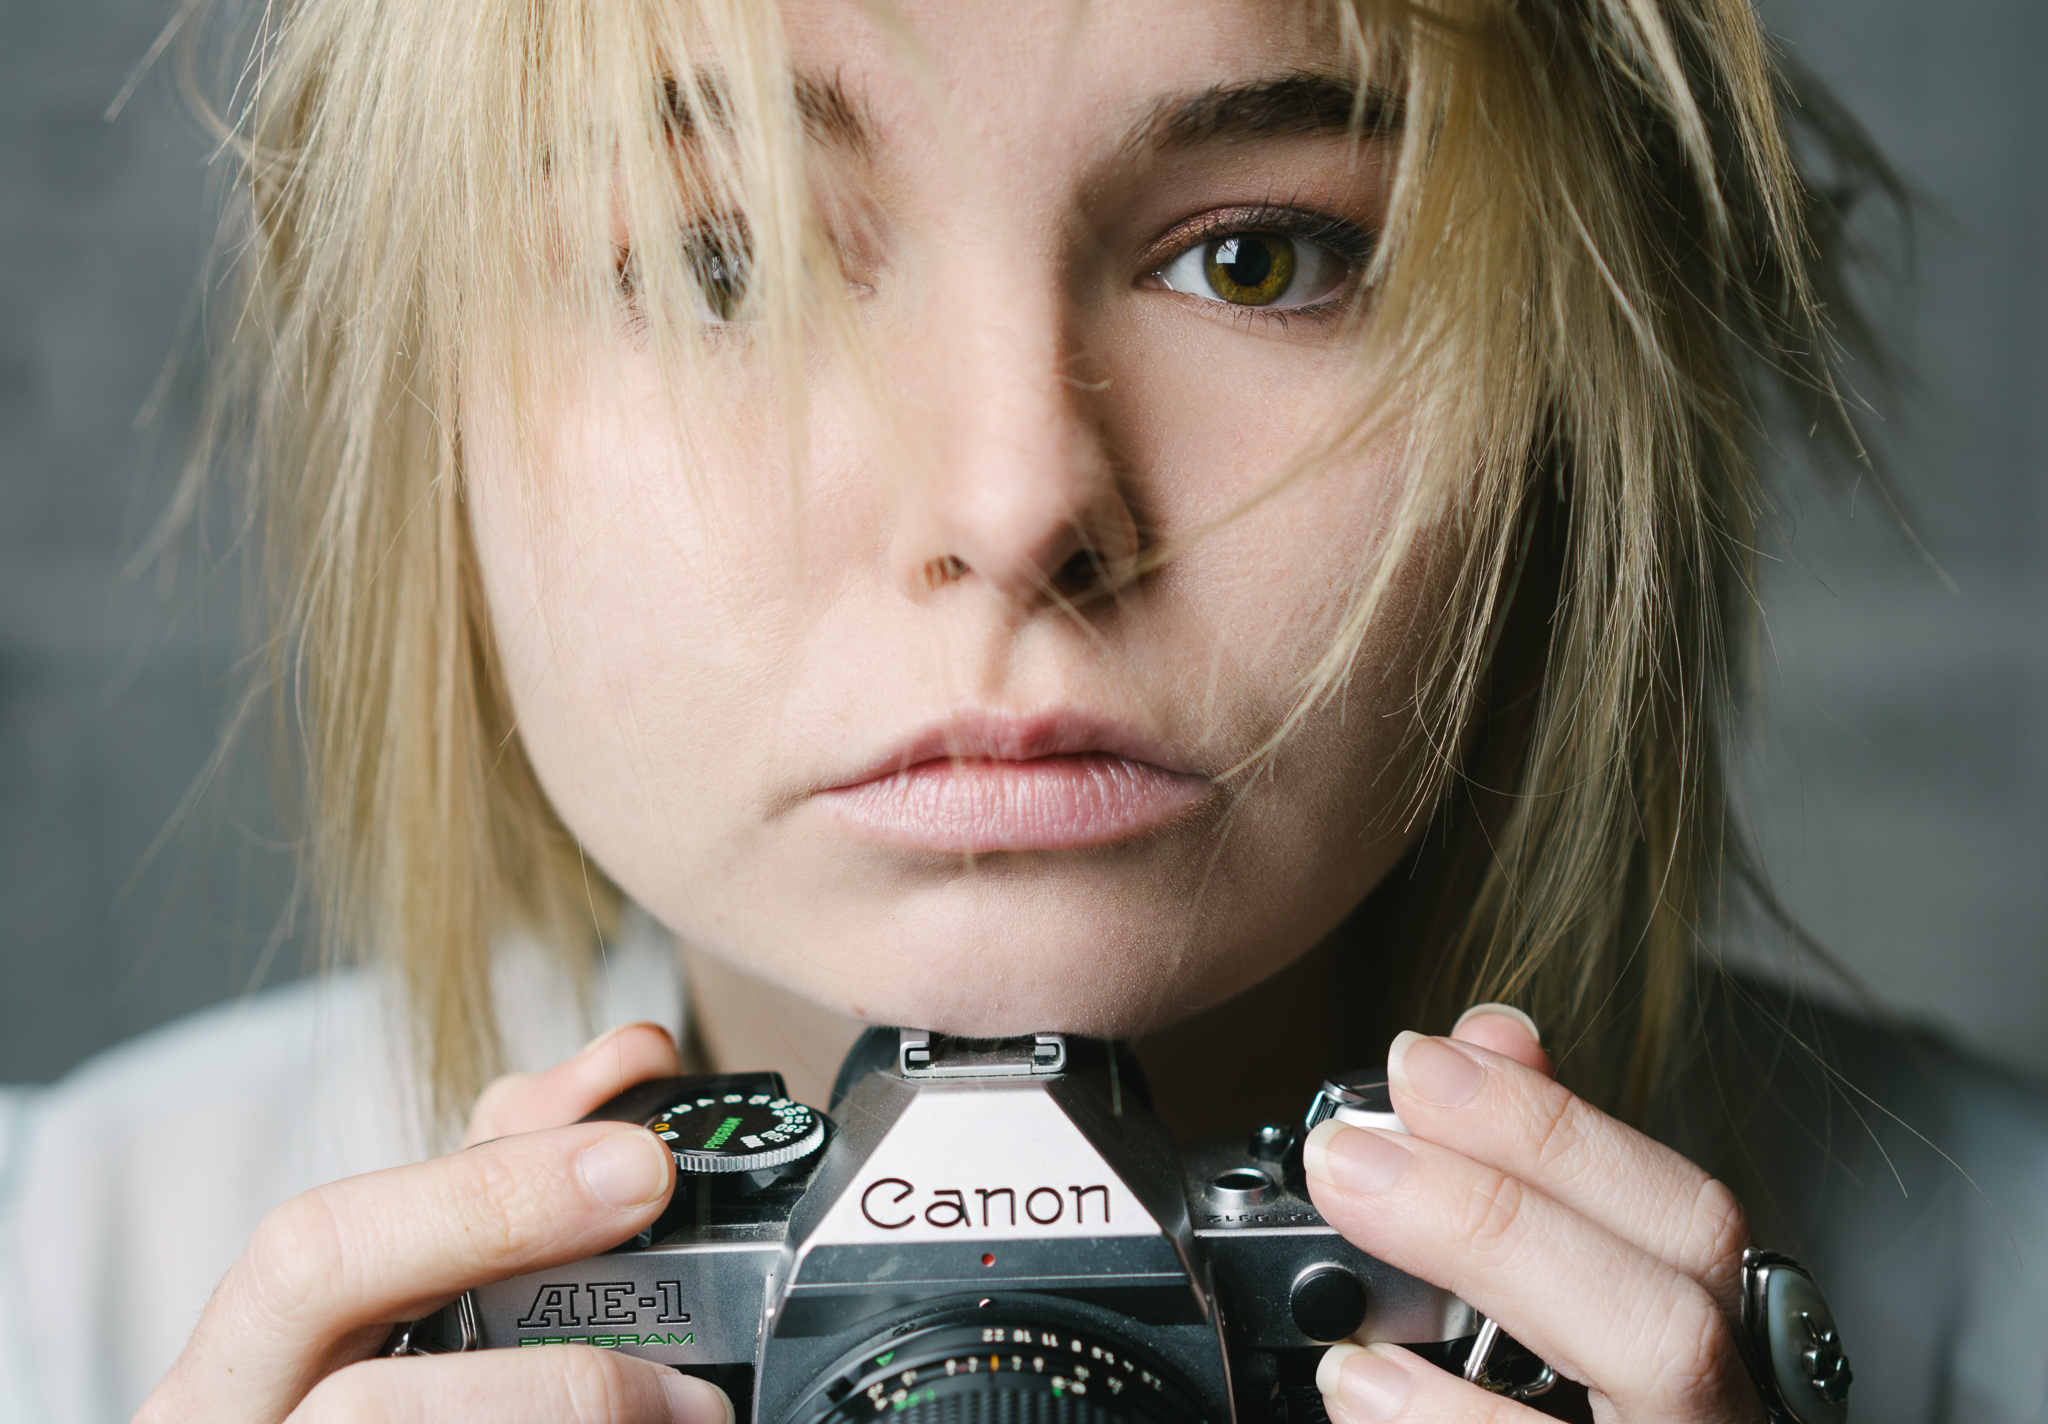 Model / Photographer:Macie Moon Pietrowicz (Indie Moon Photography)  Cameras used: Sony A7  Lens:Sonnar T* FE 55mm F1.8 Z